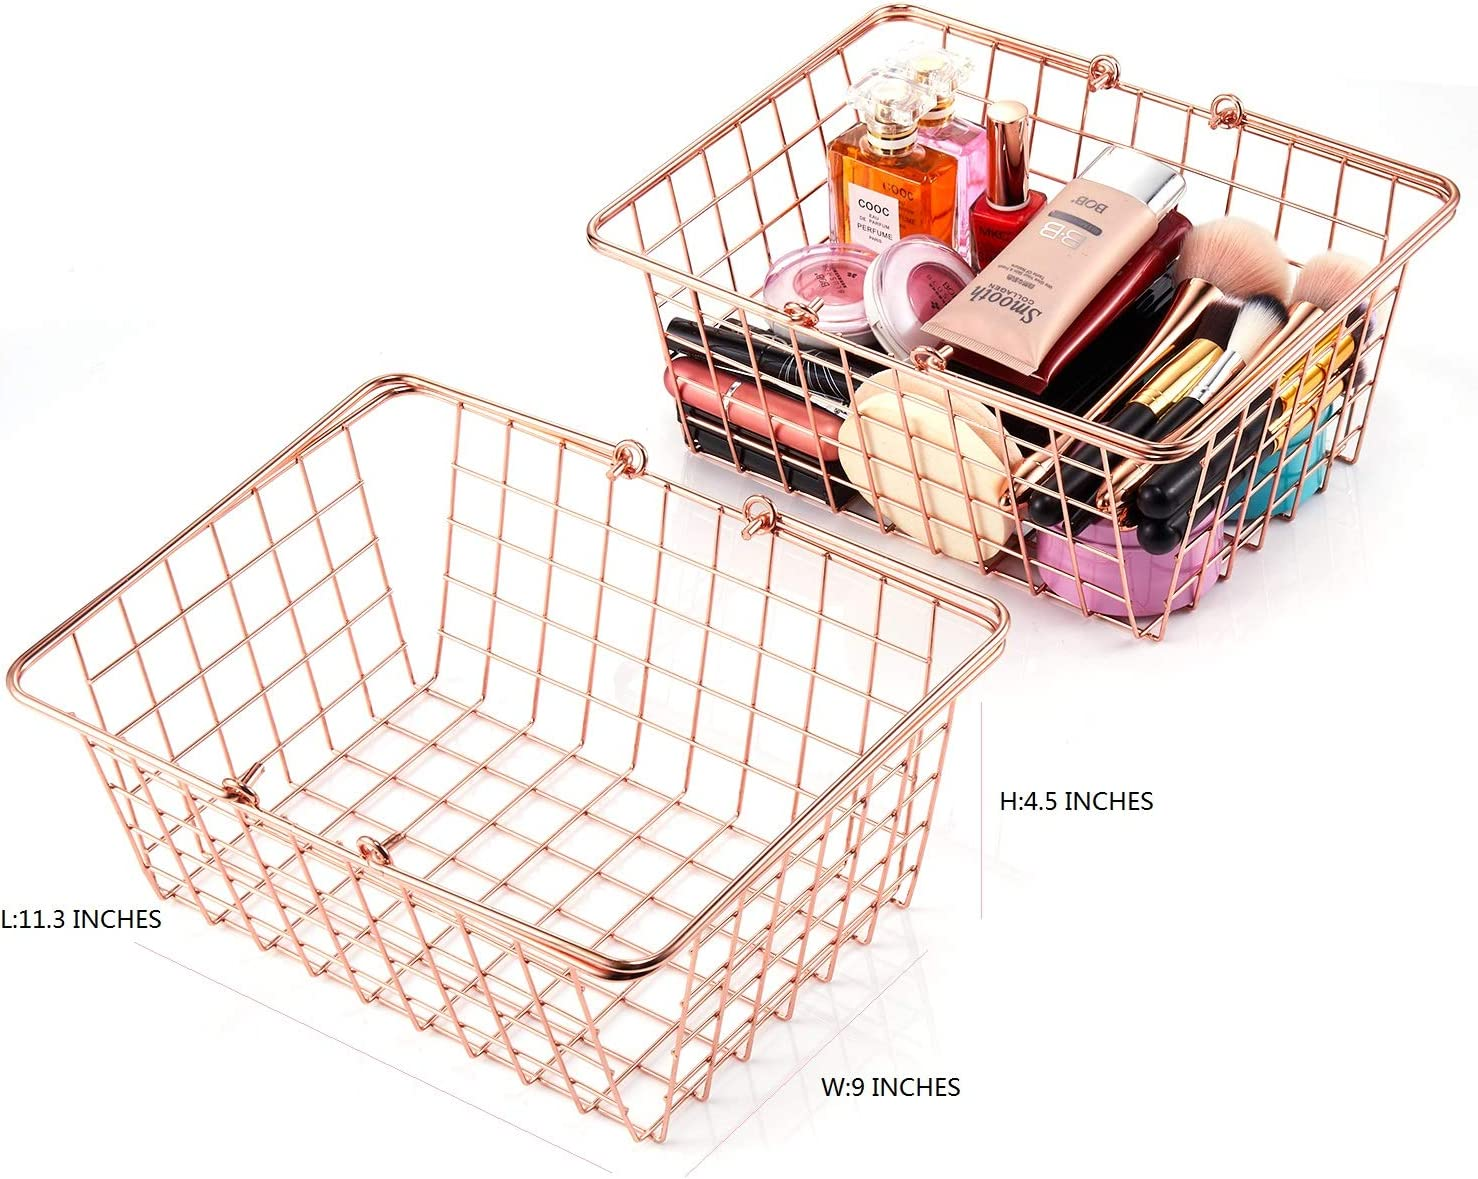 L 29*W 23* H 11 cm SINARDO 2 Pack Large Size Rose Gold Wire Storage Baskets with Handles Organizer Bin Baskets for Kitchen Cabinets Freezer Bedroom Bathroom Shopping Picnic